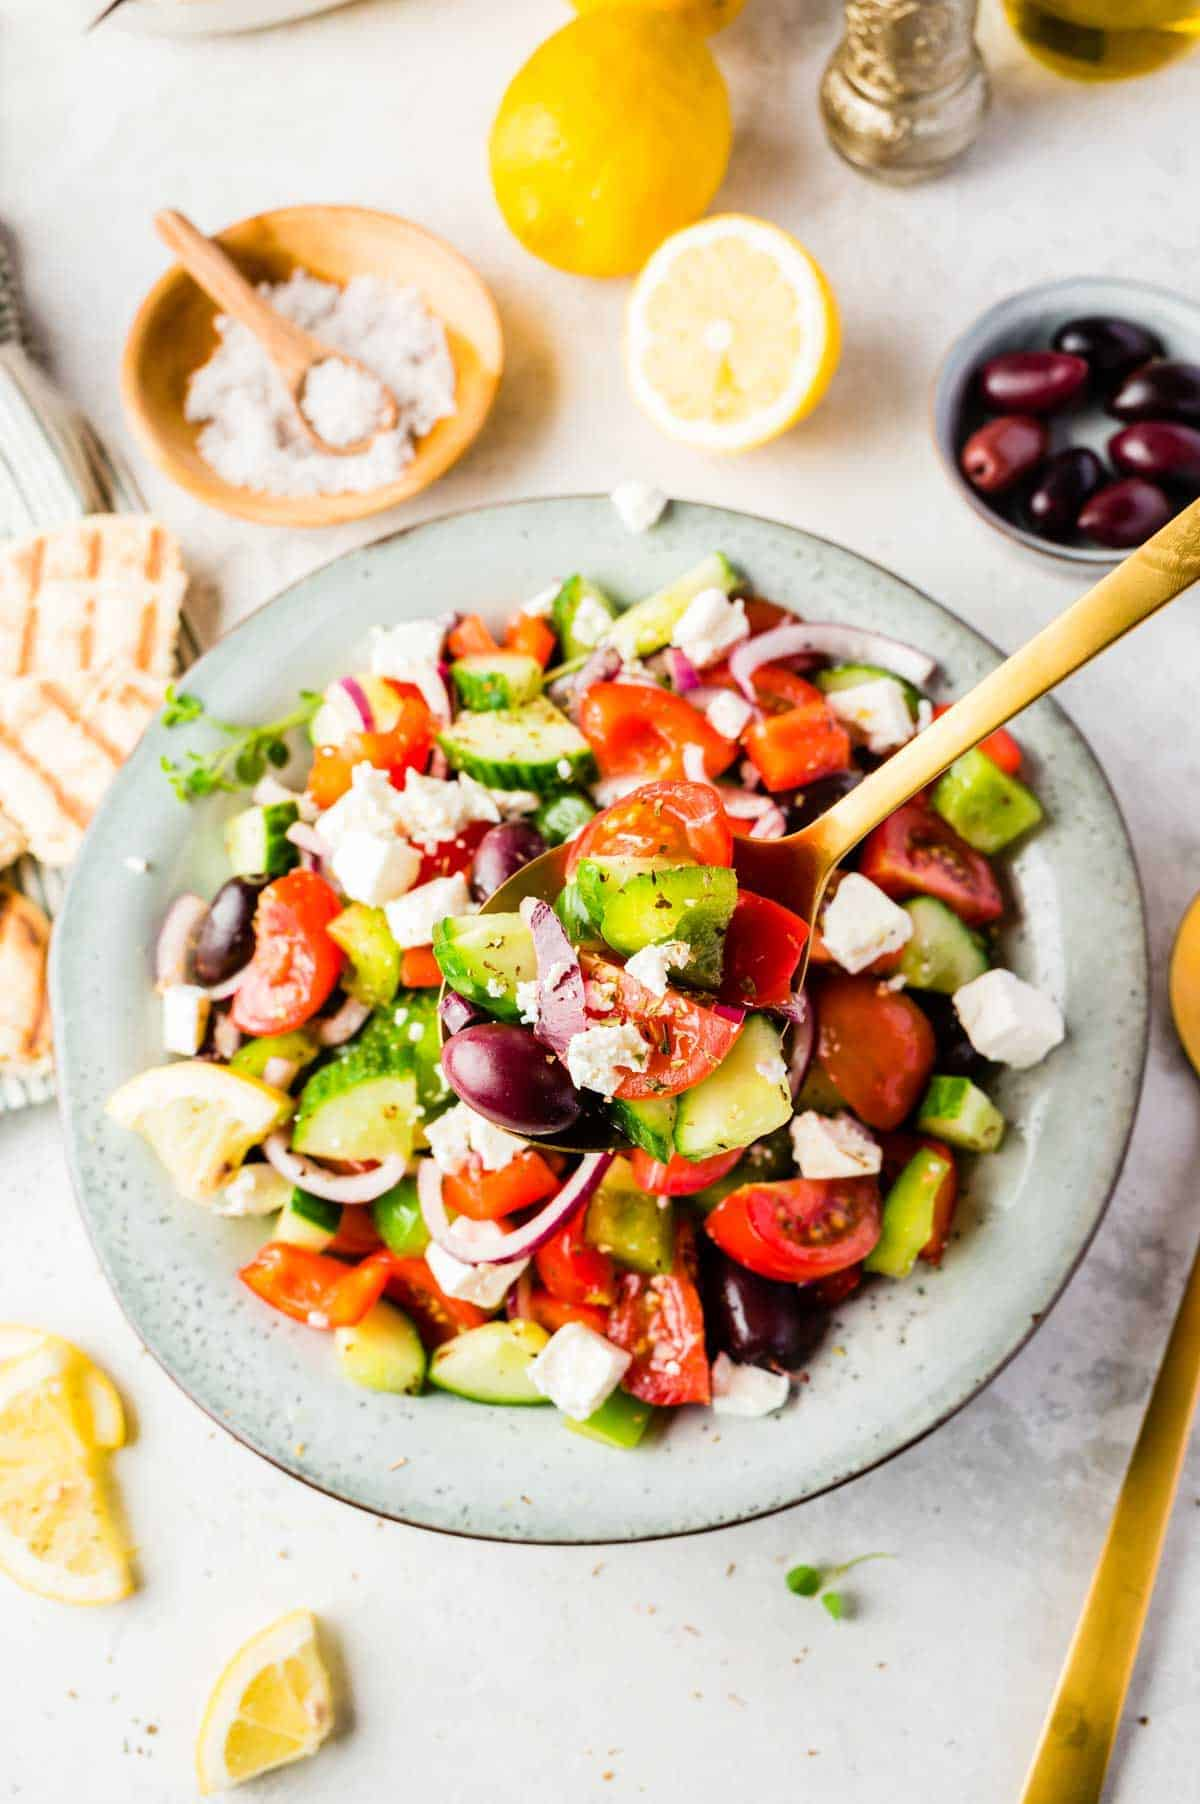 An Overhead Shot of a Freshly Made Greek Salad with Lemons and Kalamata Olived Behind it